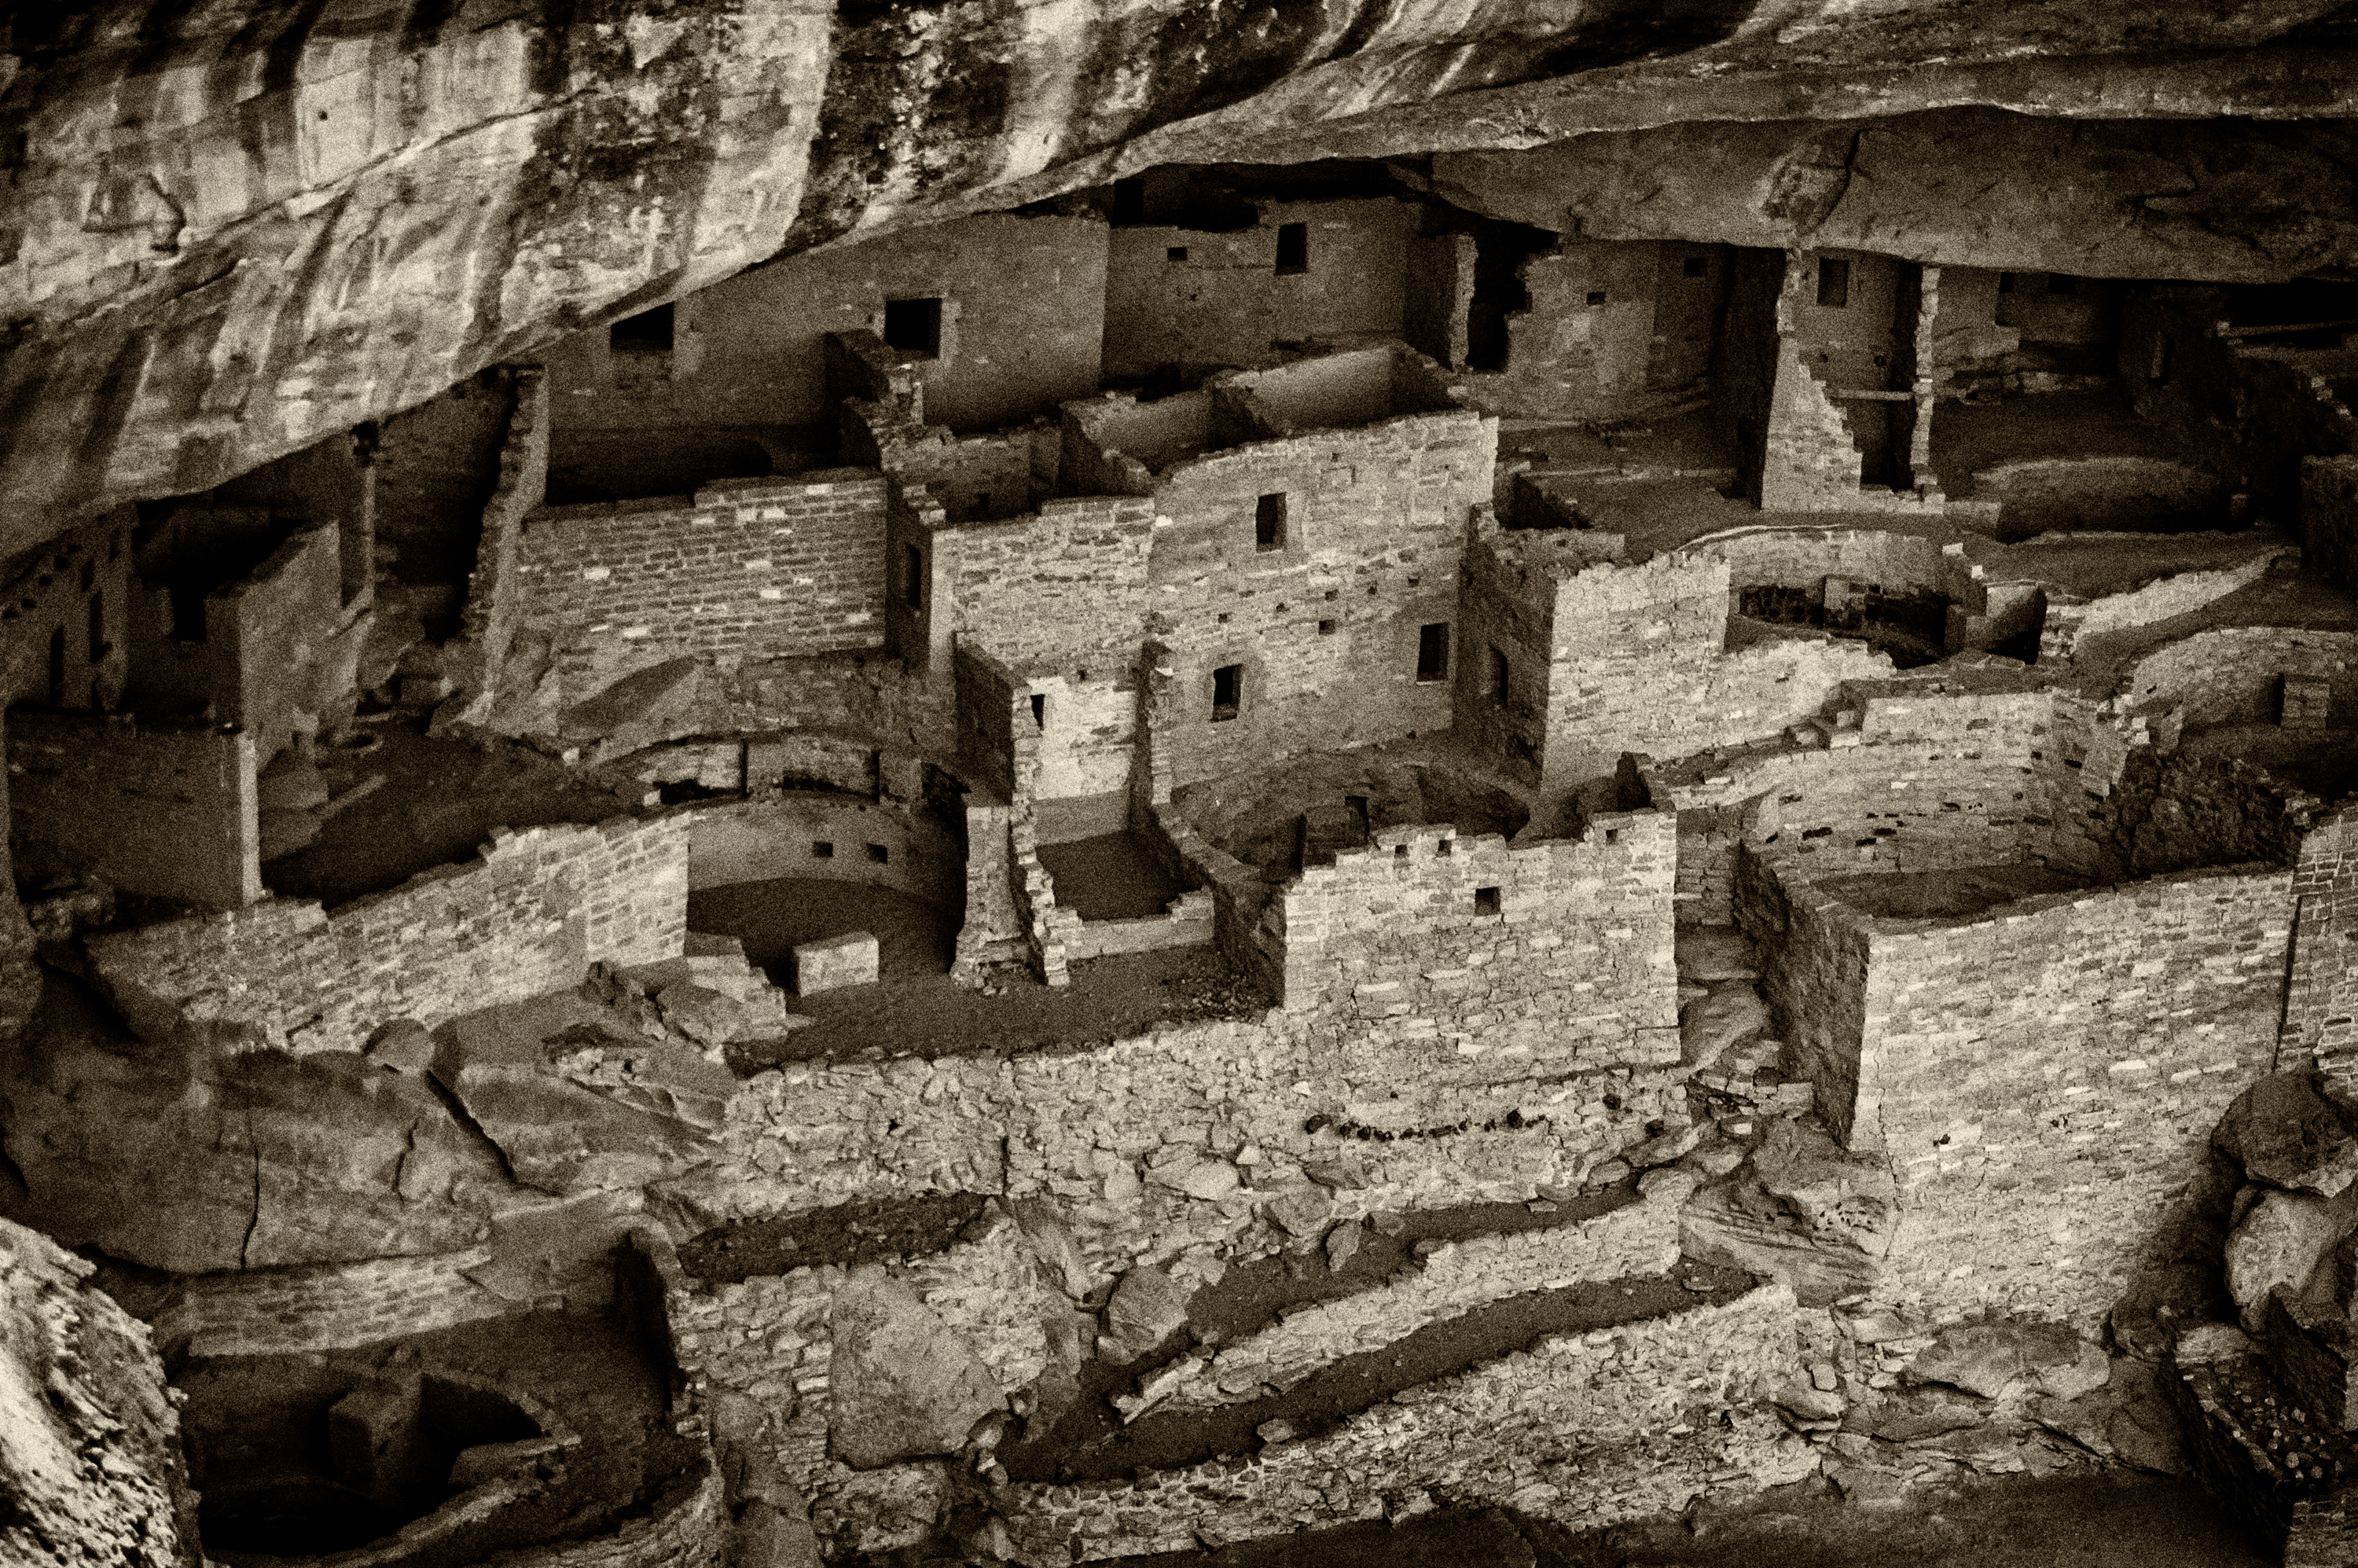 ghost town author bloy bruce mesa verde np